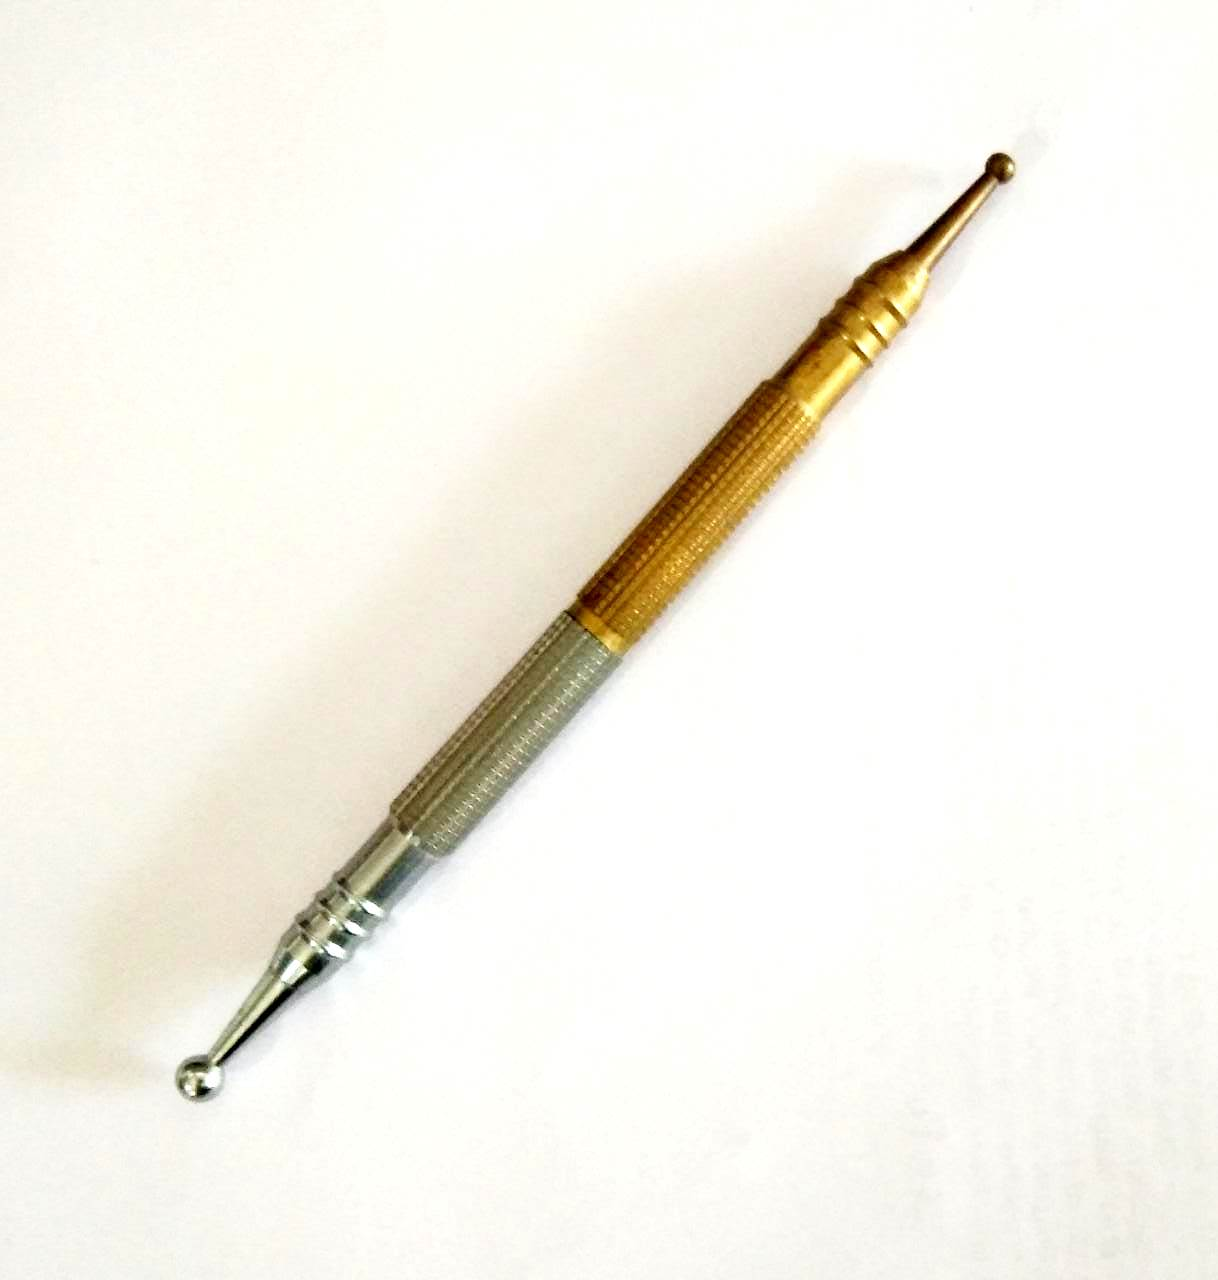 ACS Sujok Jimmy/Probe - 2 Tone spring  - 535